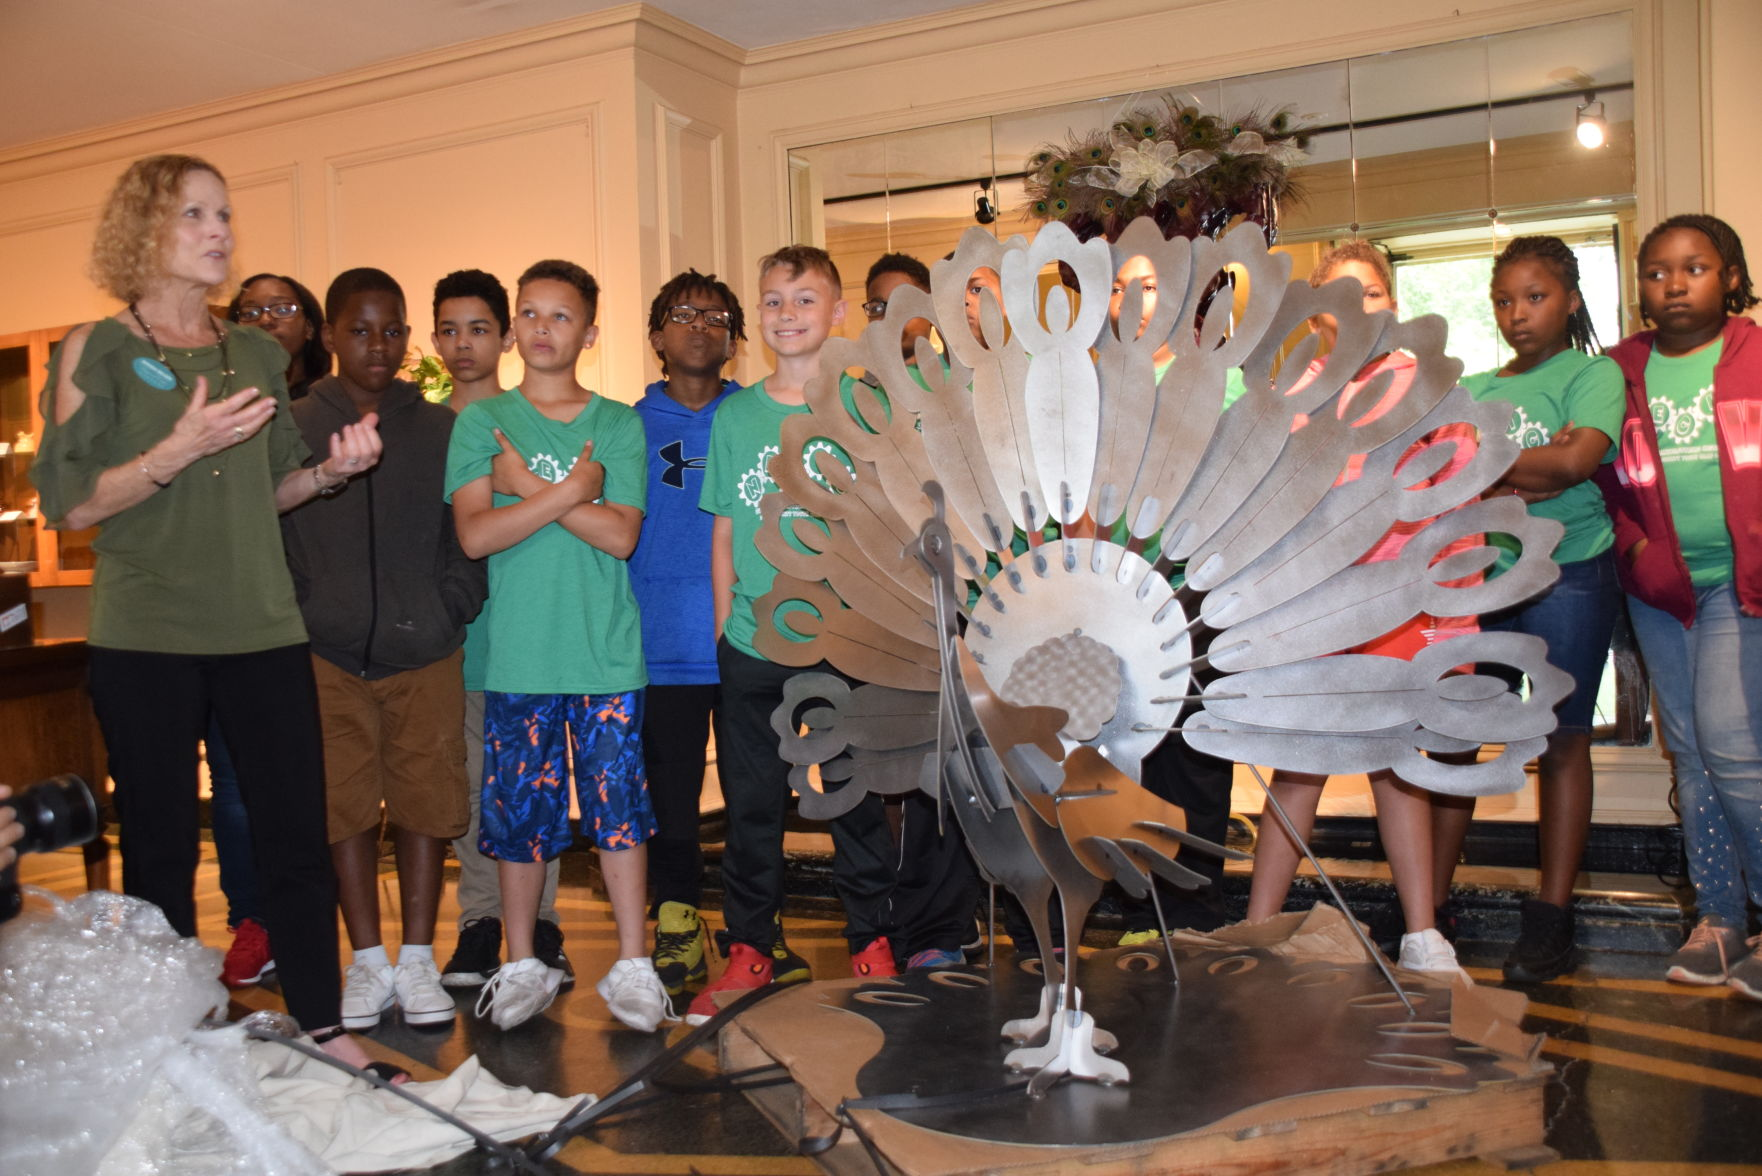 Manufacturing camp unveils peacock statue at Kingwood